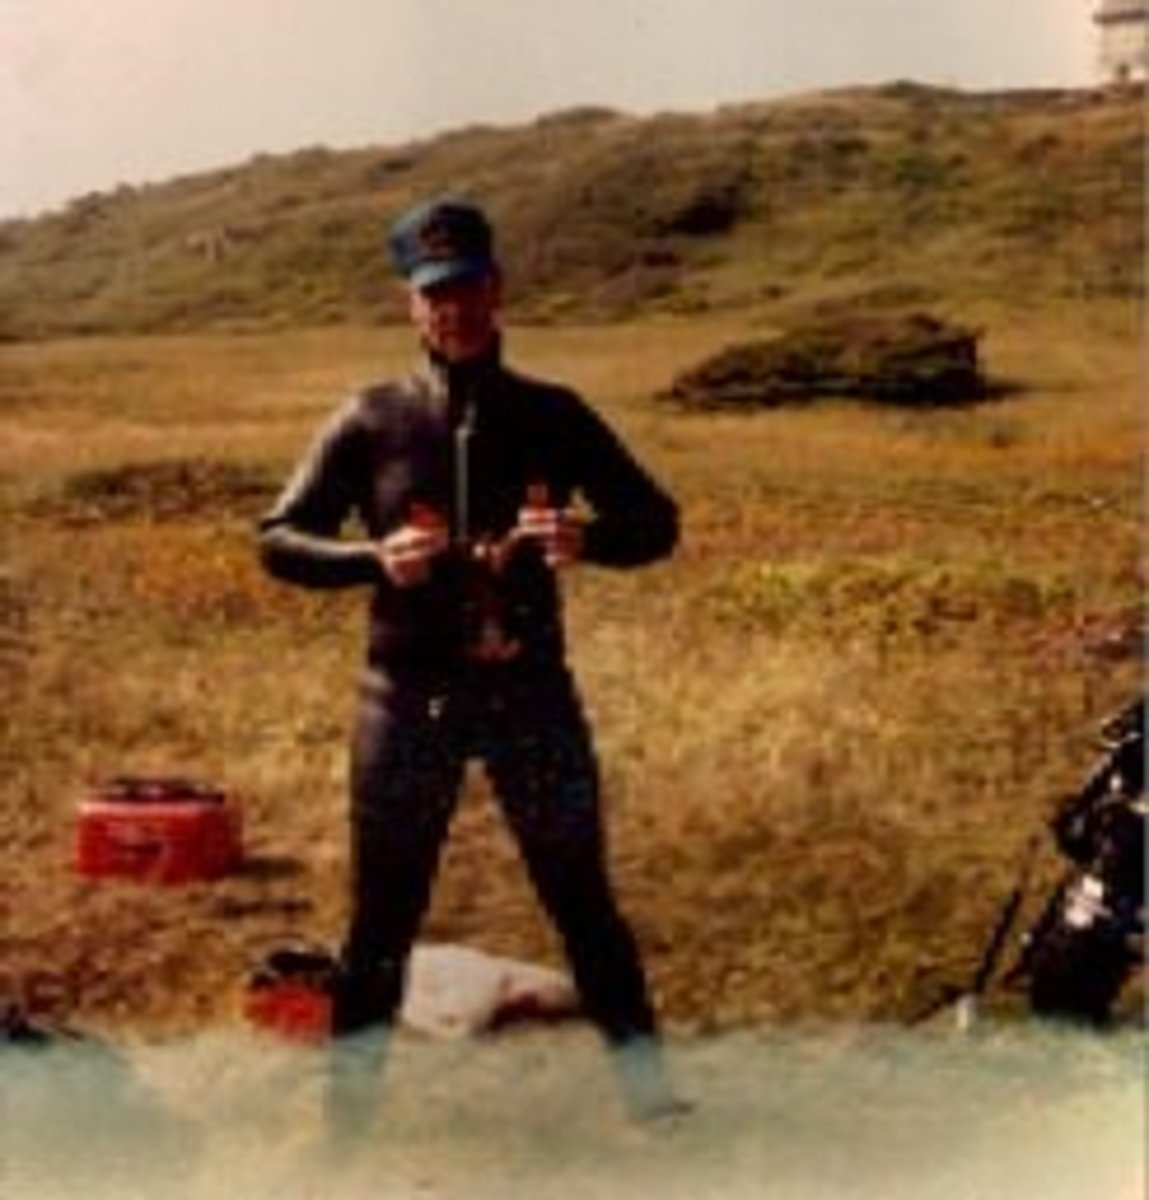 I can't remember this guys name but I believe he was a military diver and worked with Knobby at Shearwater